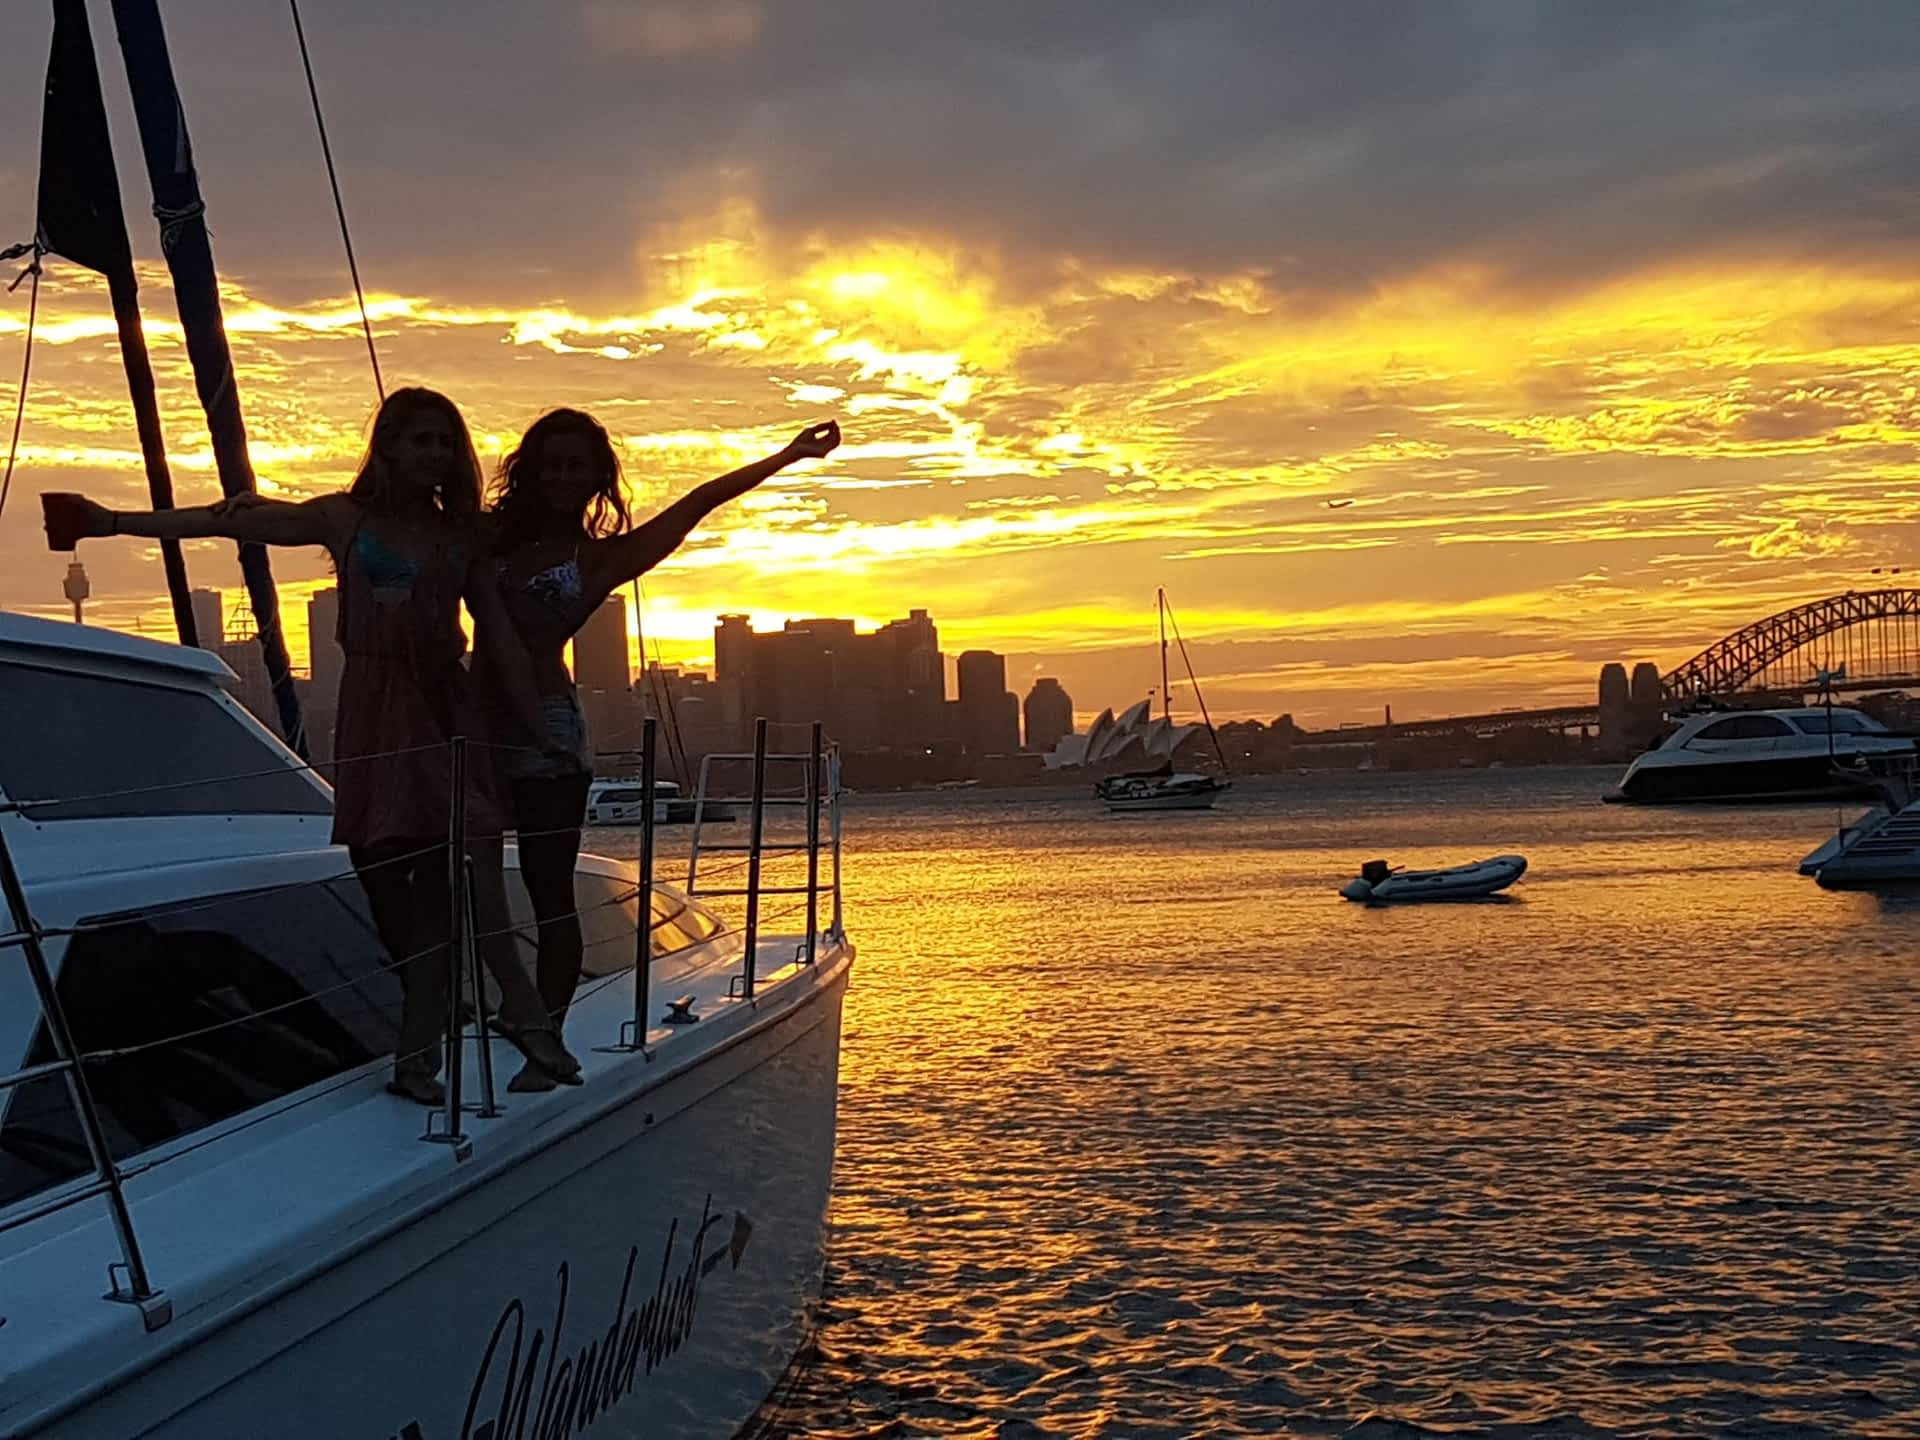 Sydney Topless Waitresses Boat Party